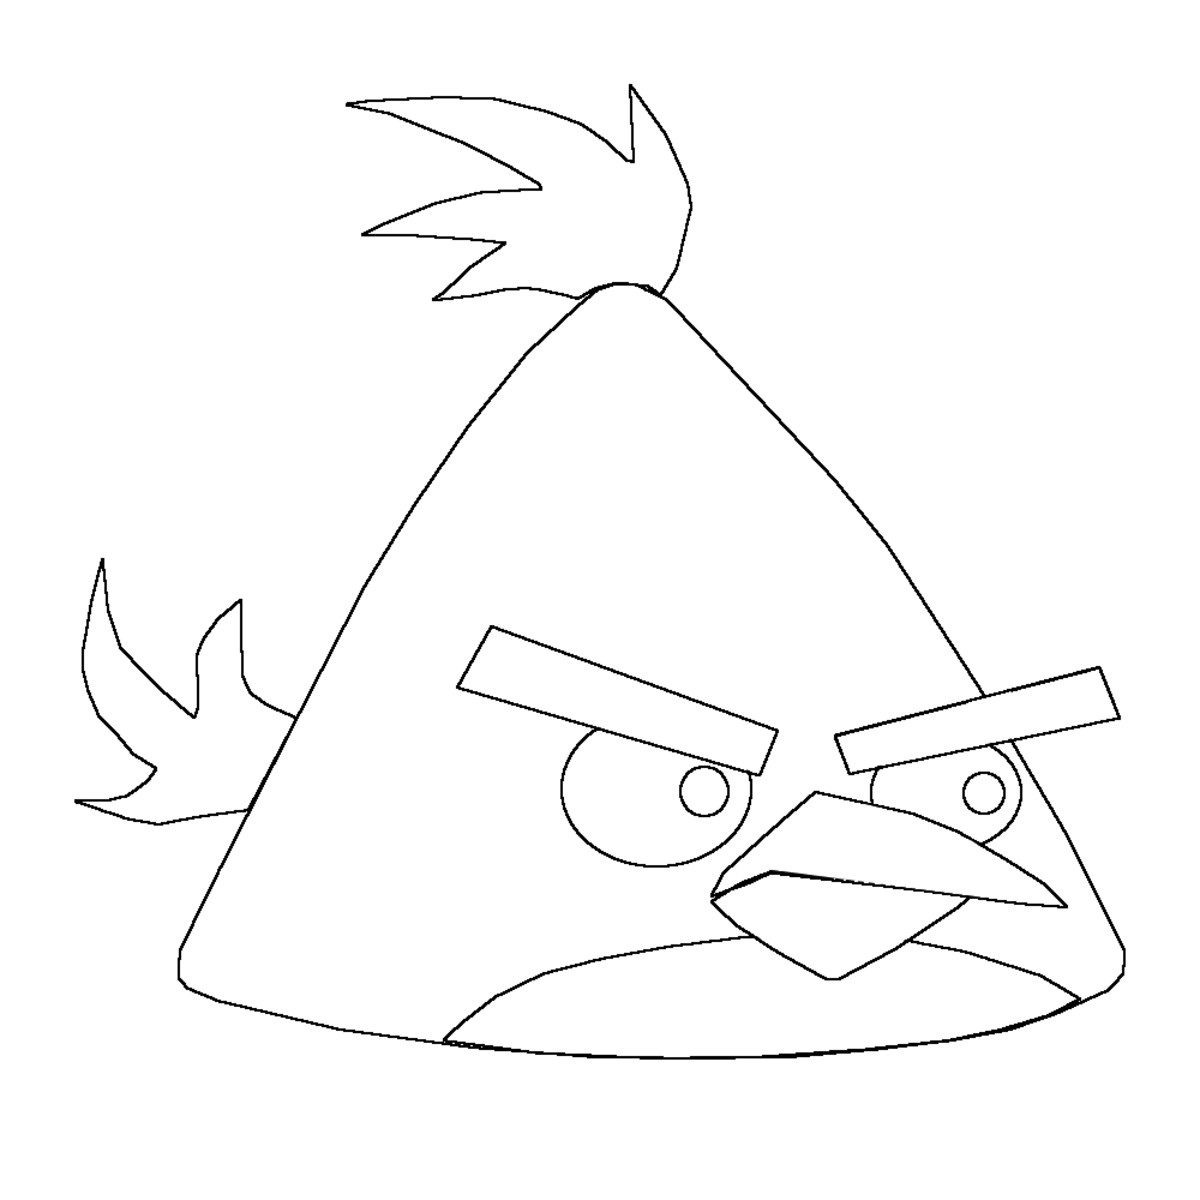 Rubbing out unwanted lines on the Angry Bird.